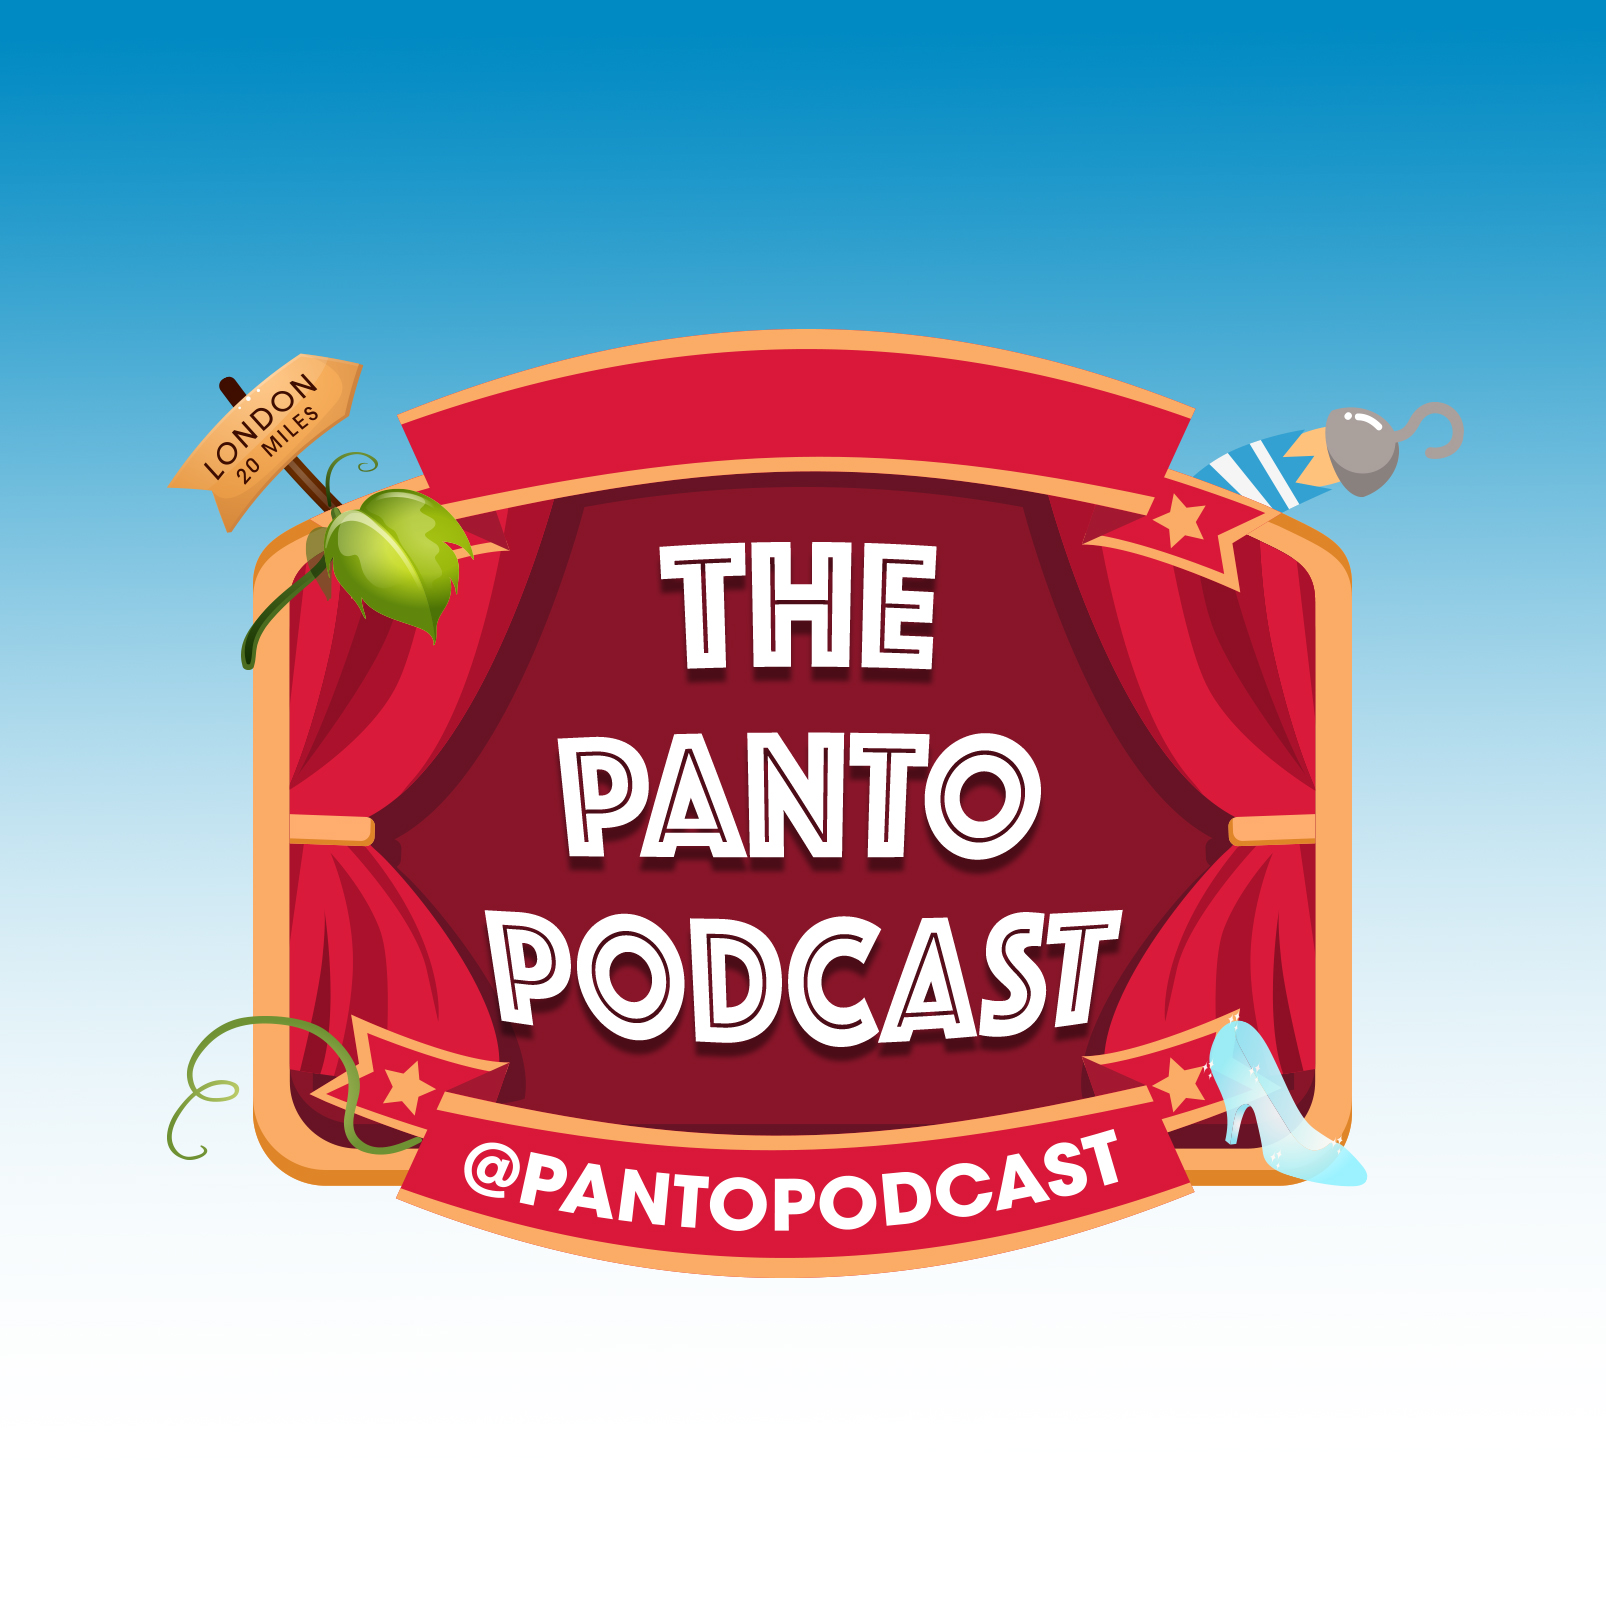 The Panto Podcast